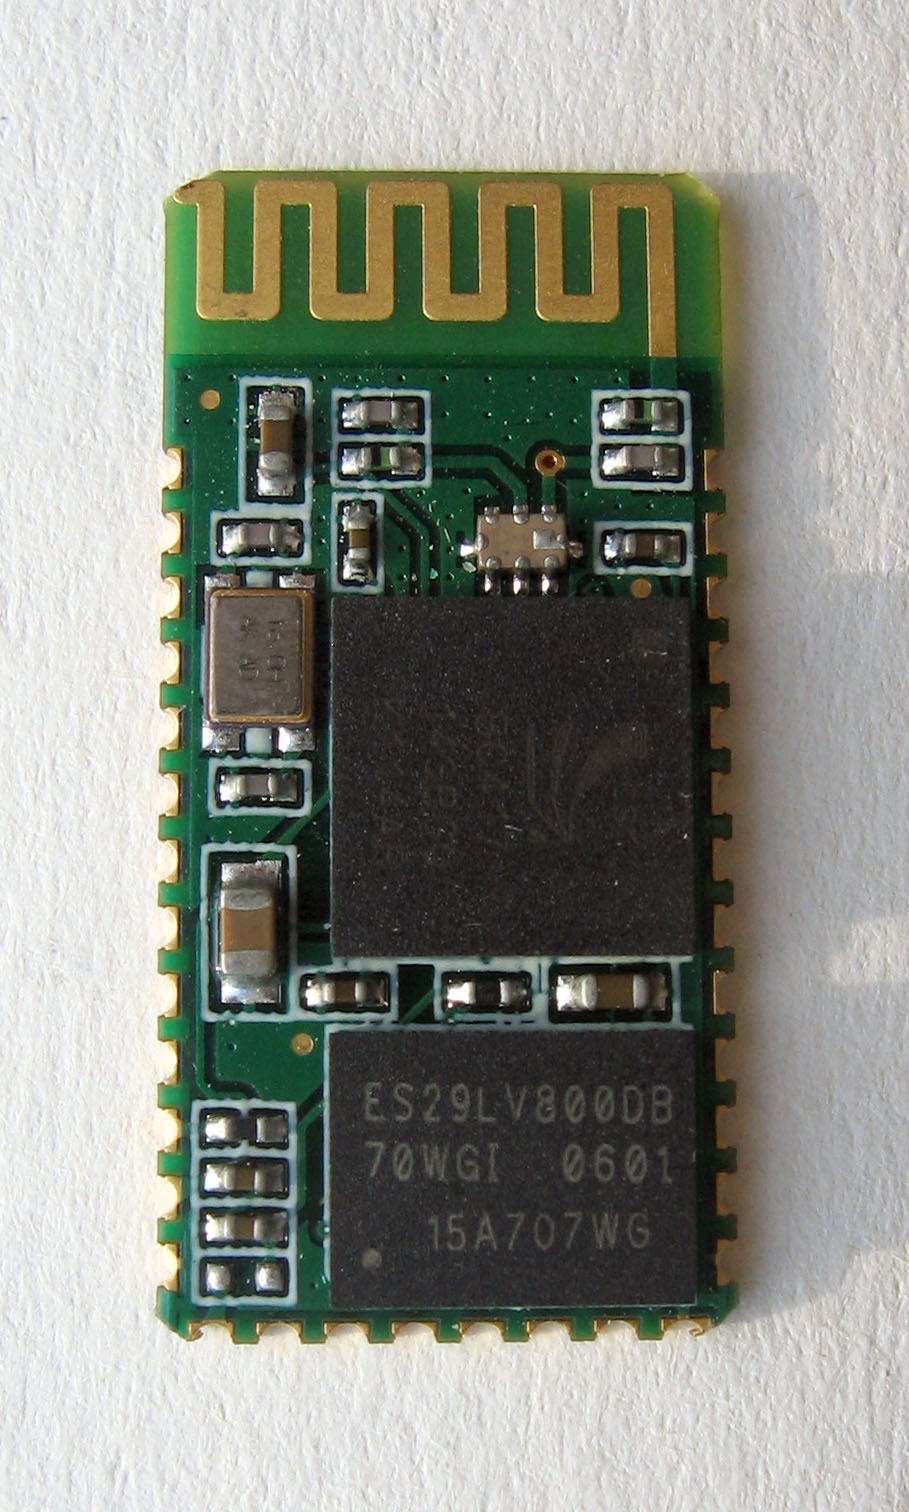 Bluetooth-HC-04-top-IMG_1295.JPG